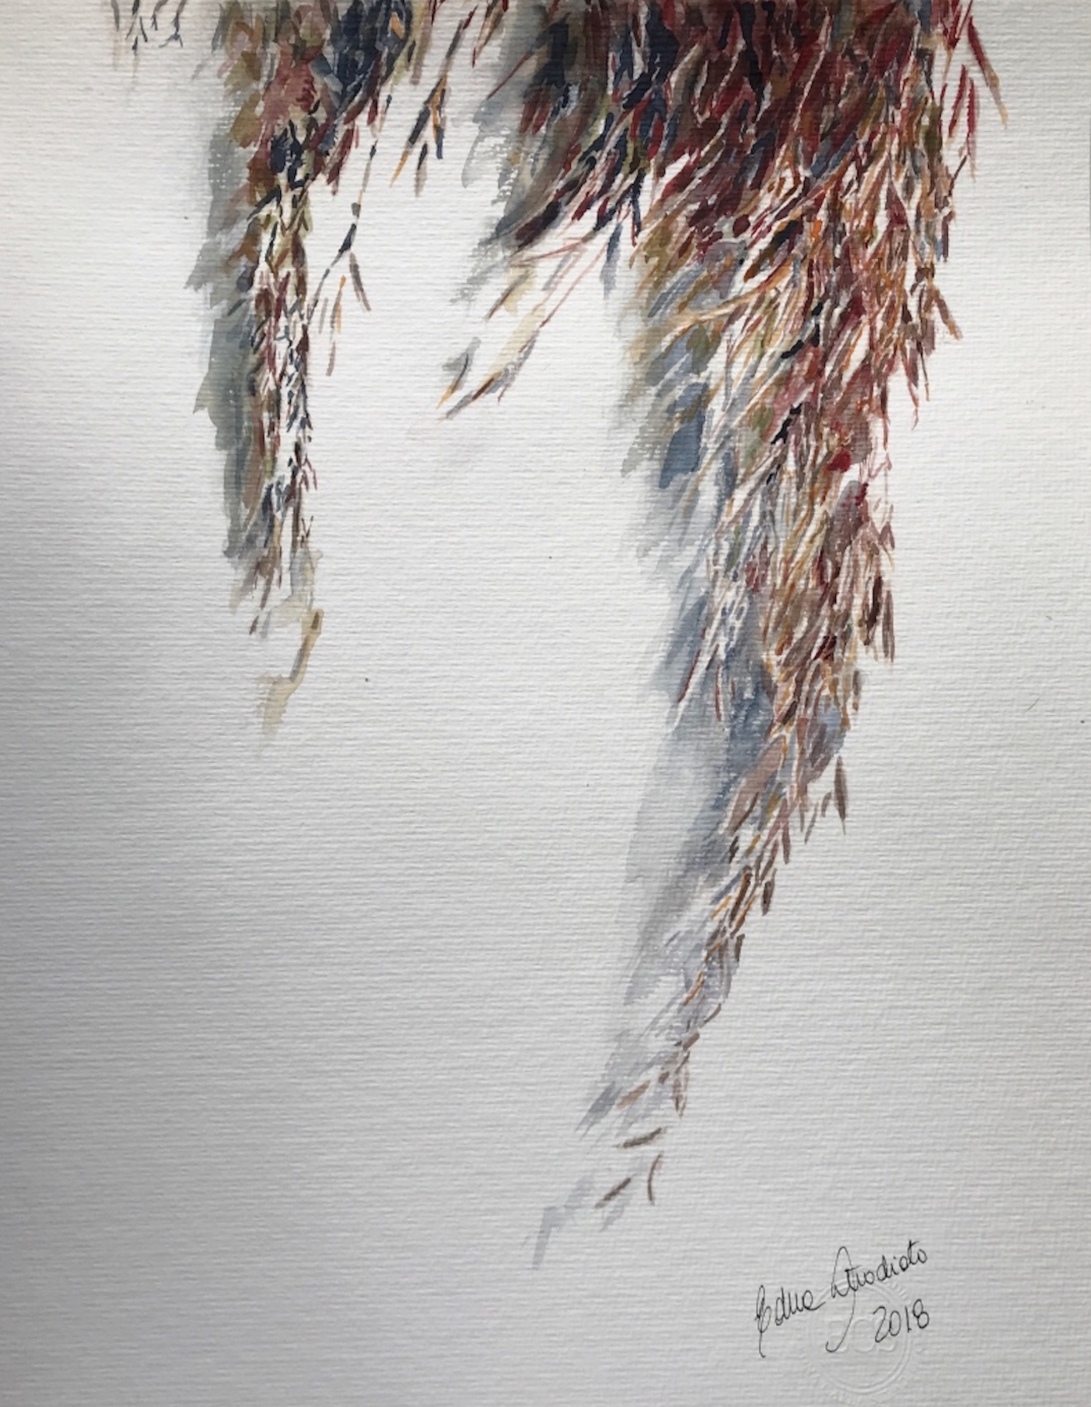 pampas grass 19_watercolor in hahnemuhle 36x48cm 425 gsm_Edna Carla Stradioto 2018_USD 400